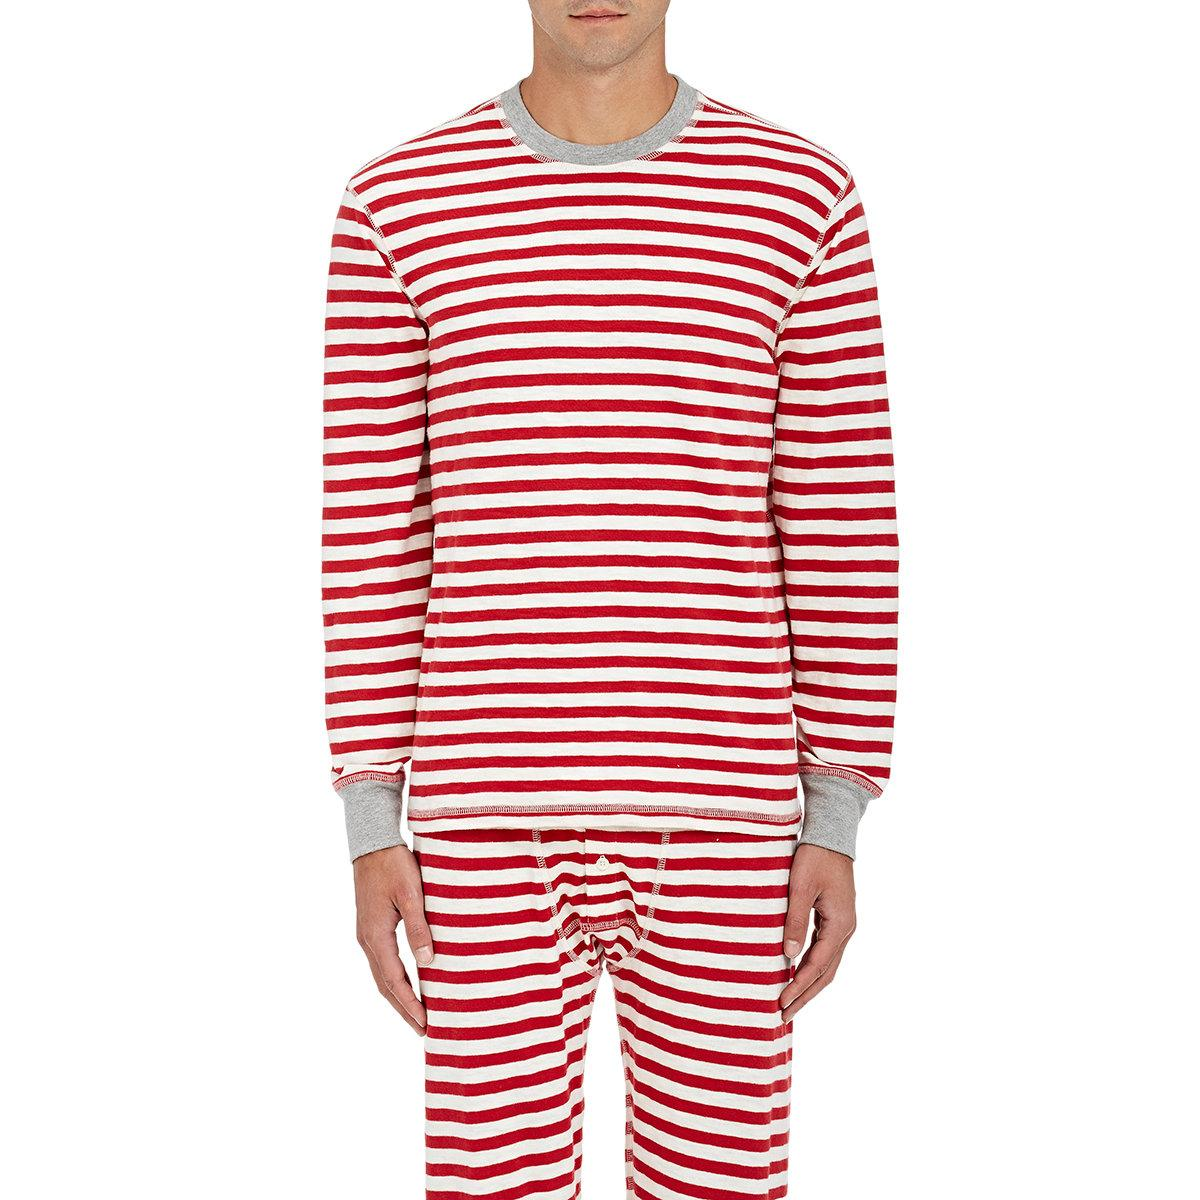 Lyst Sleepy Jones Rugby Striped Cotton Thermal Shirt In